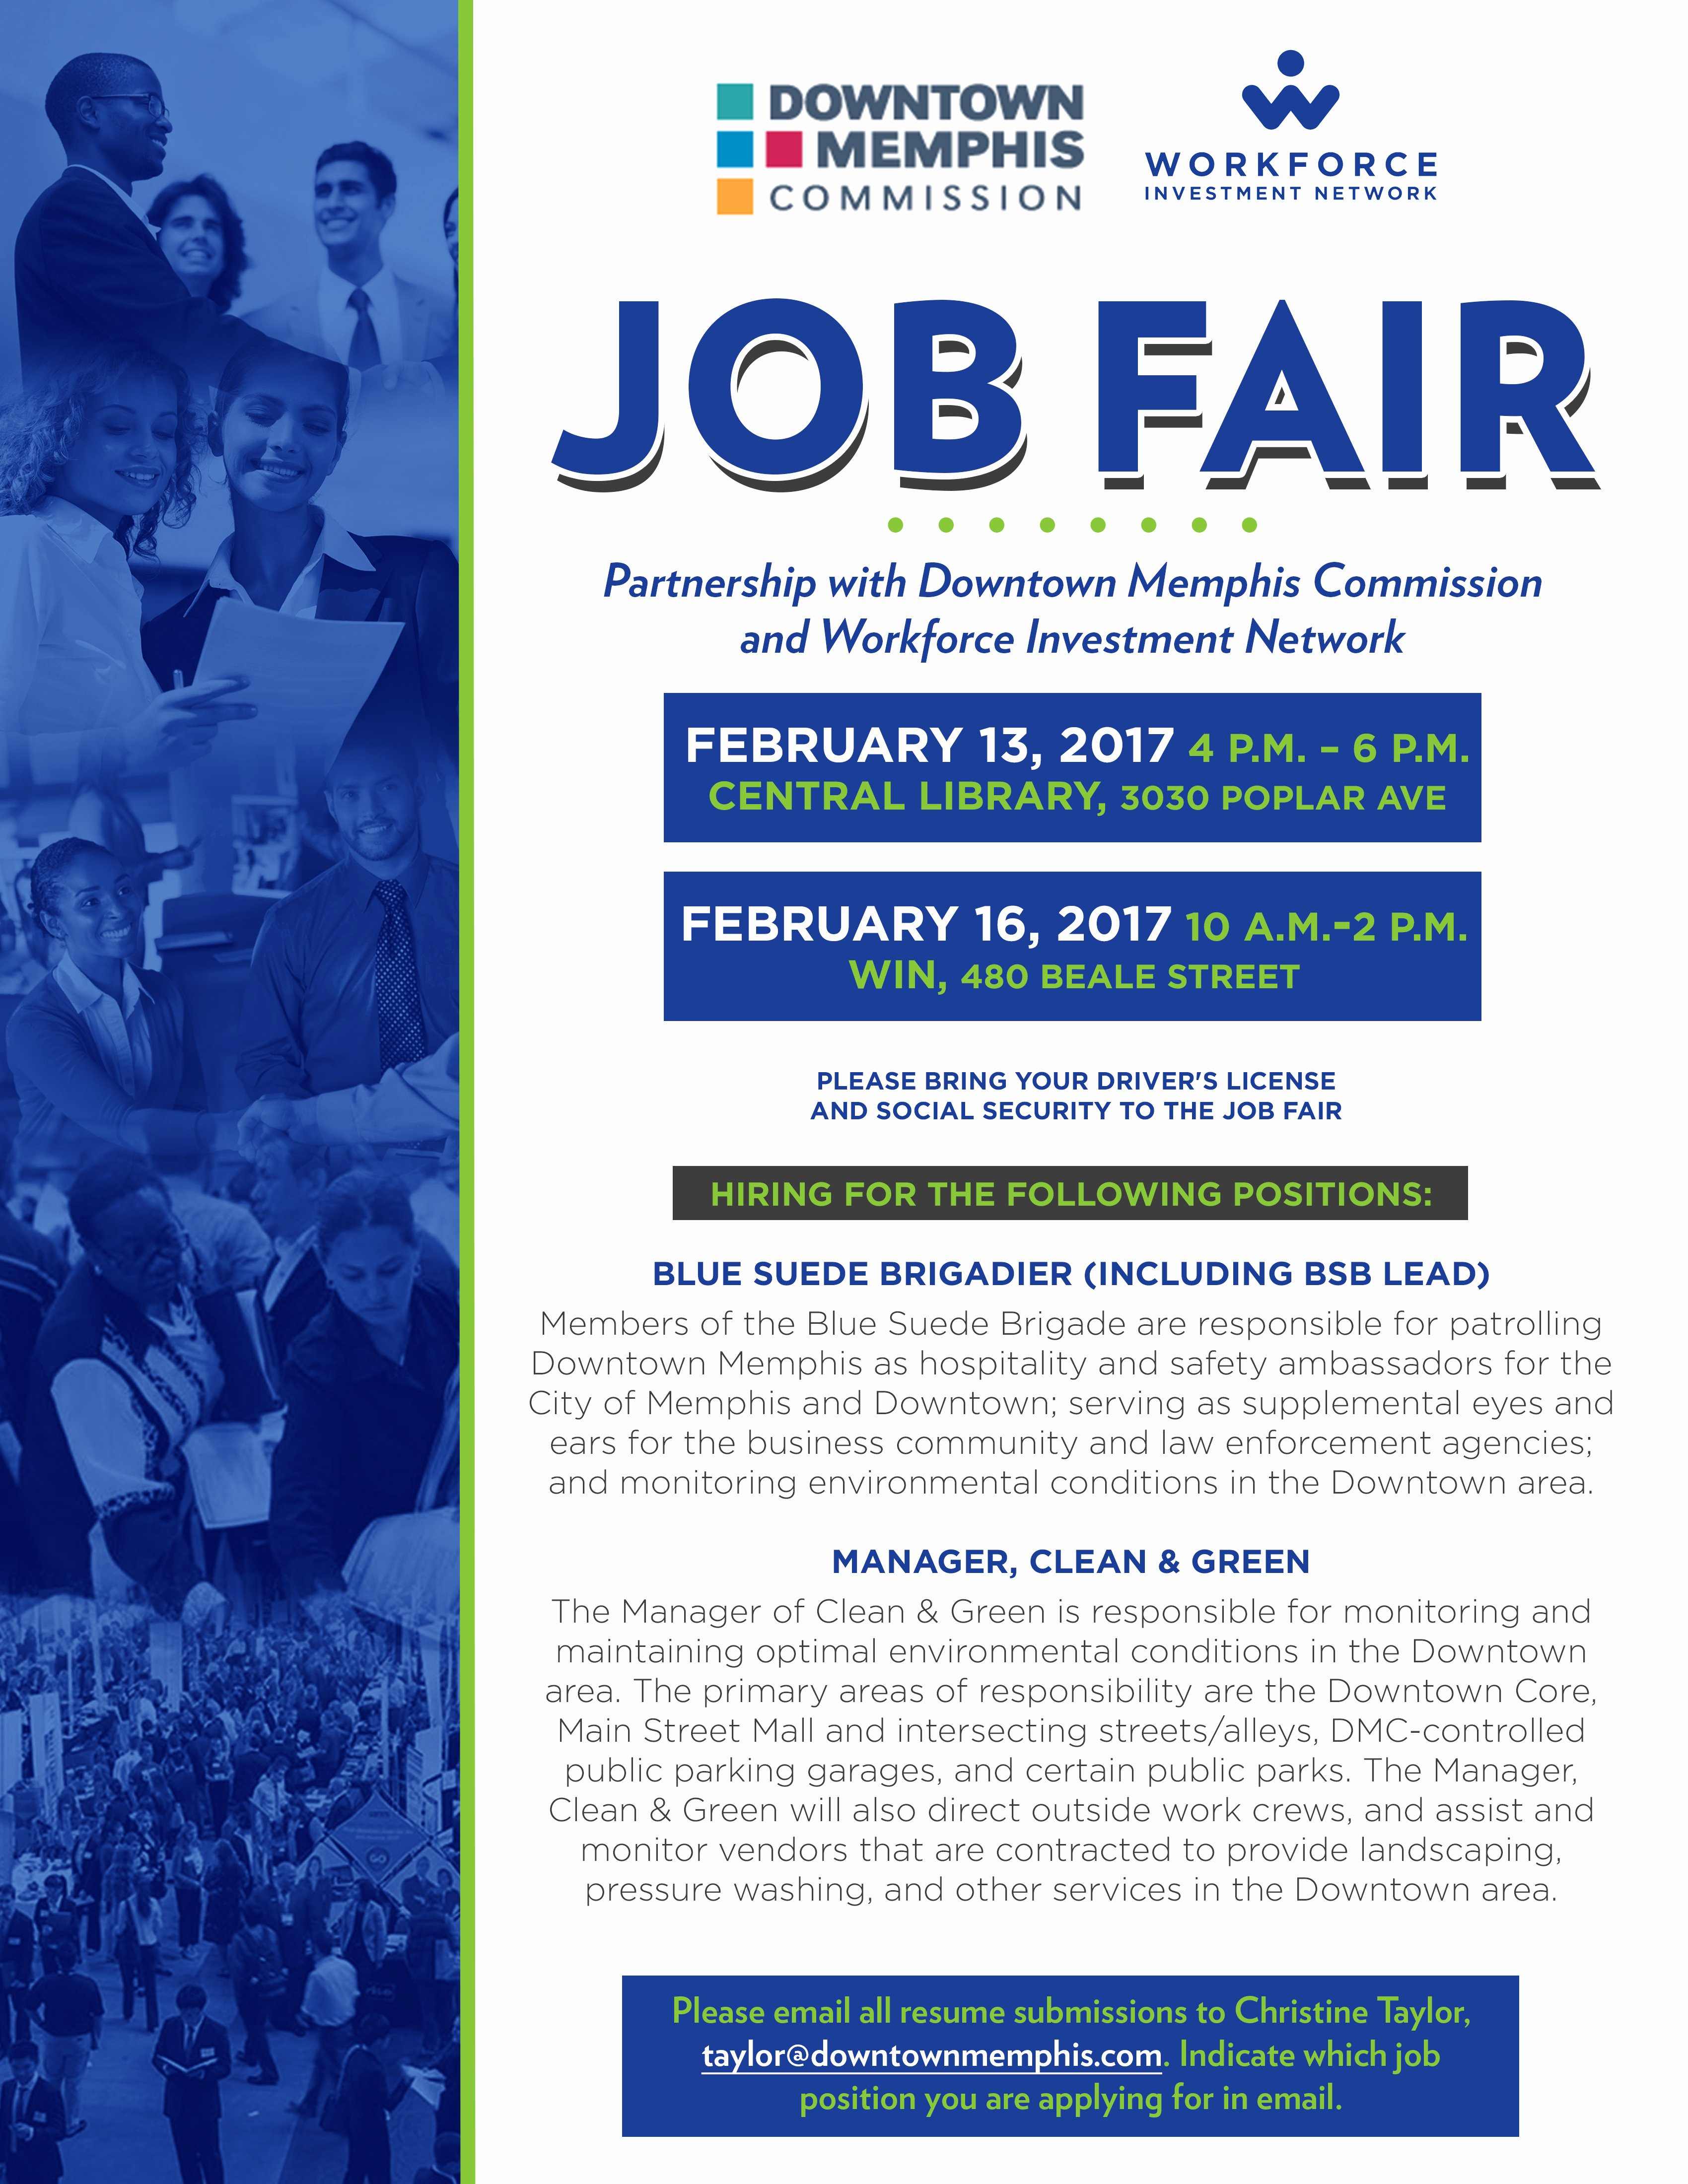 Job Fair Flyer Template Elegant Job Fair Hosted by Downtown Memphis Mission and